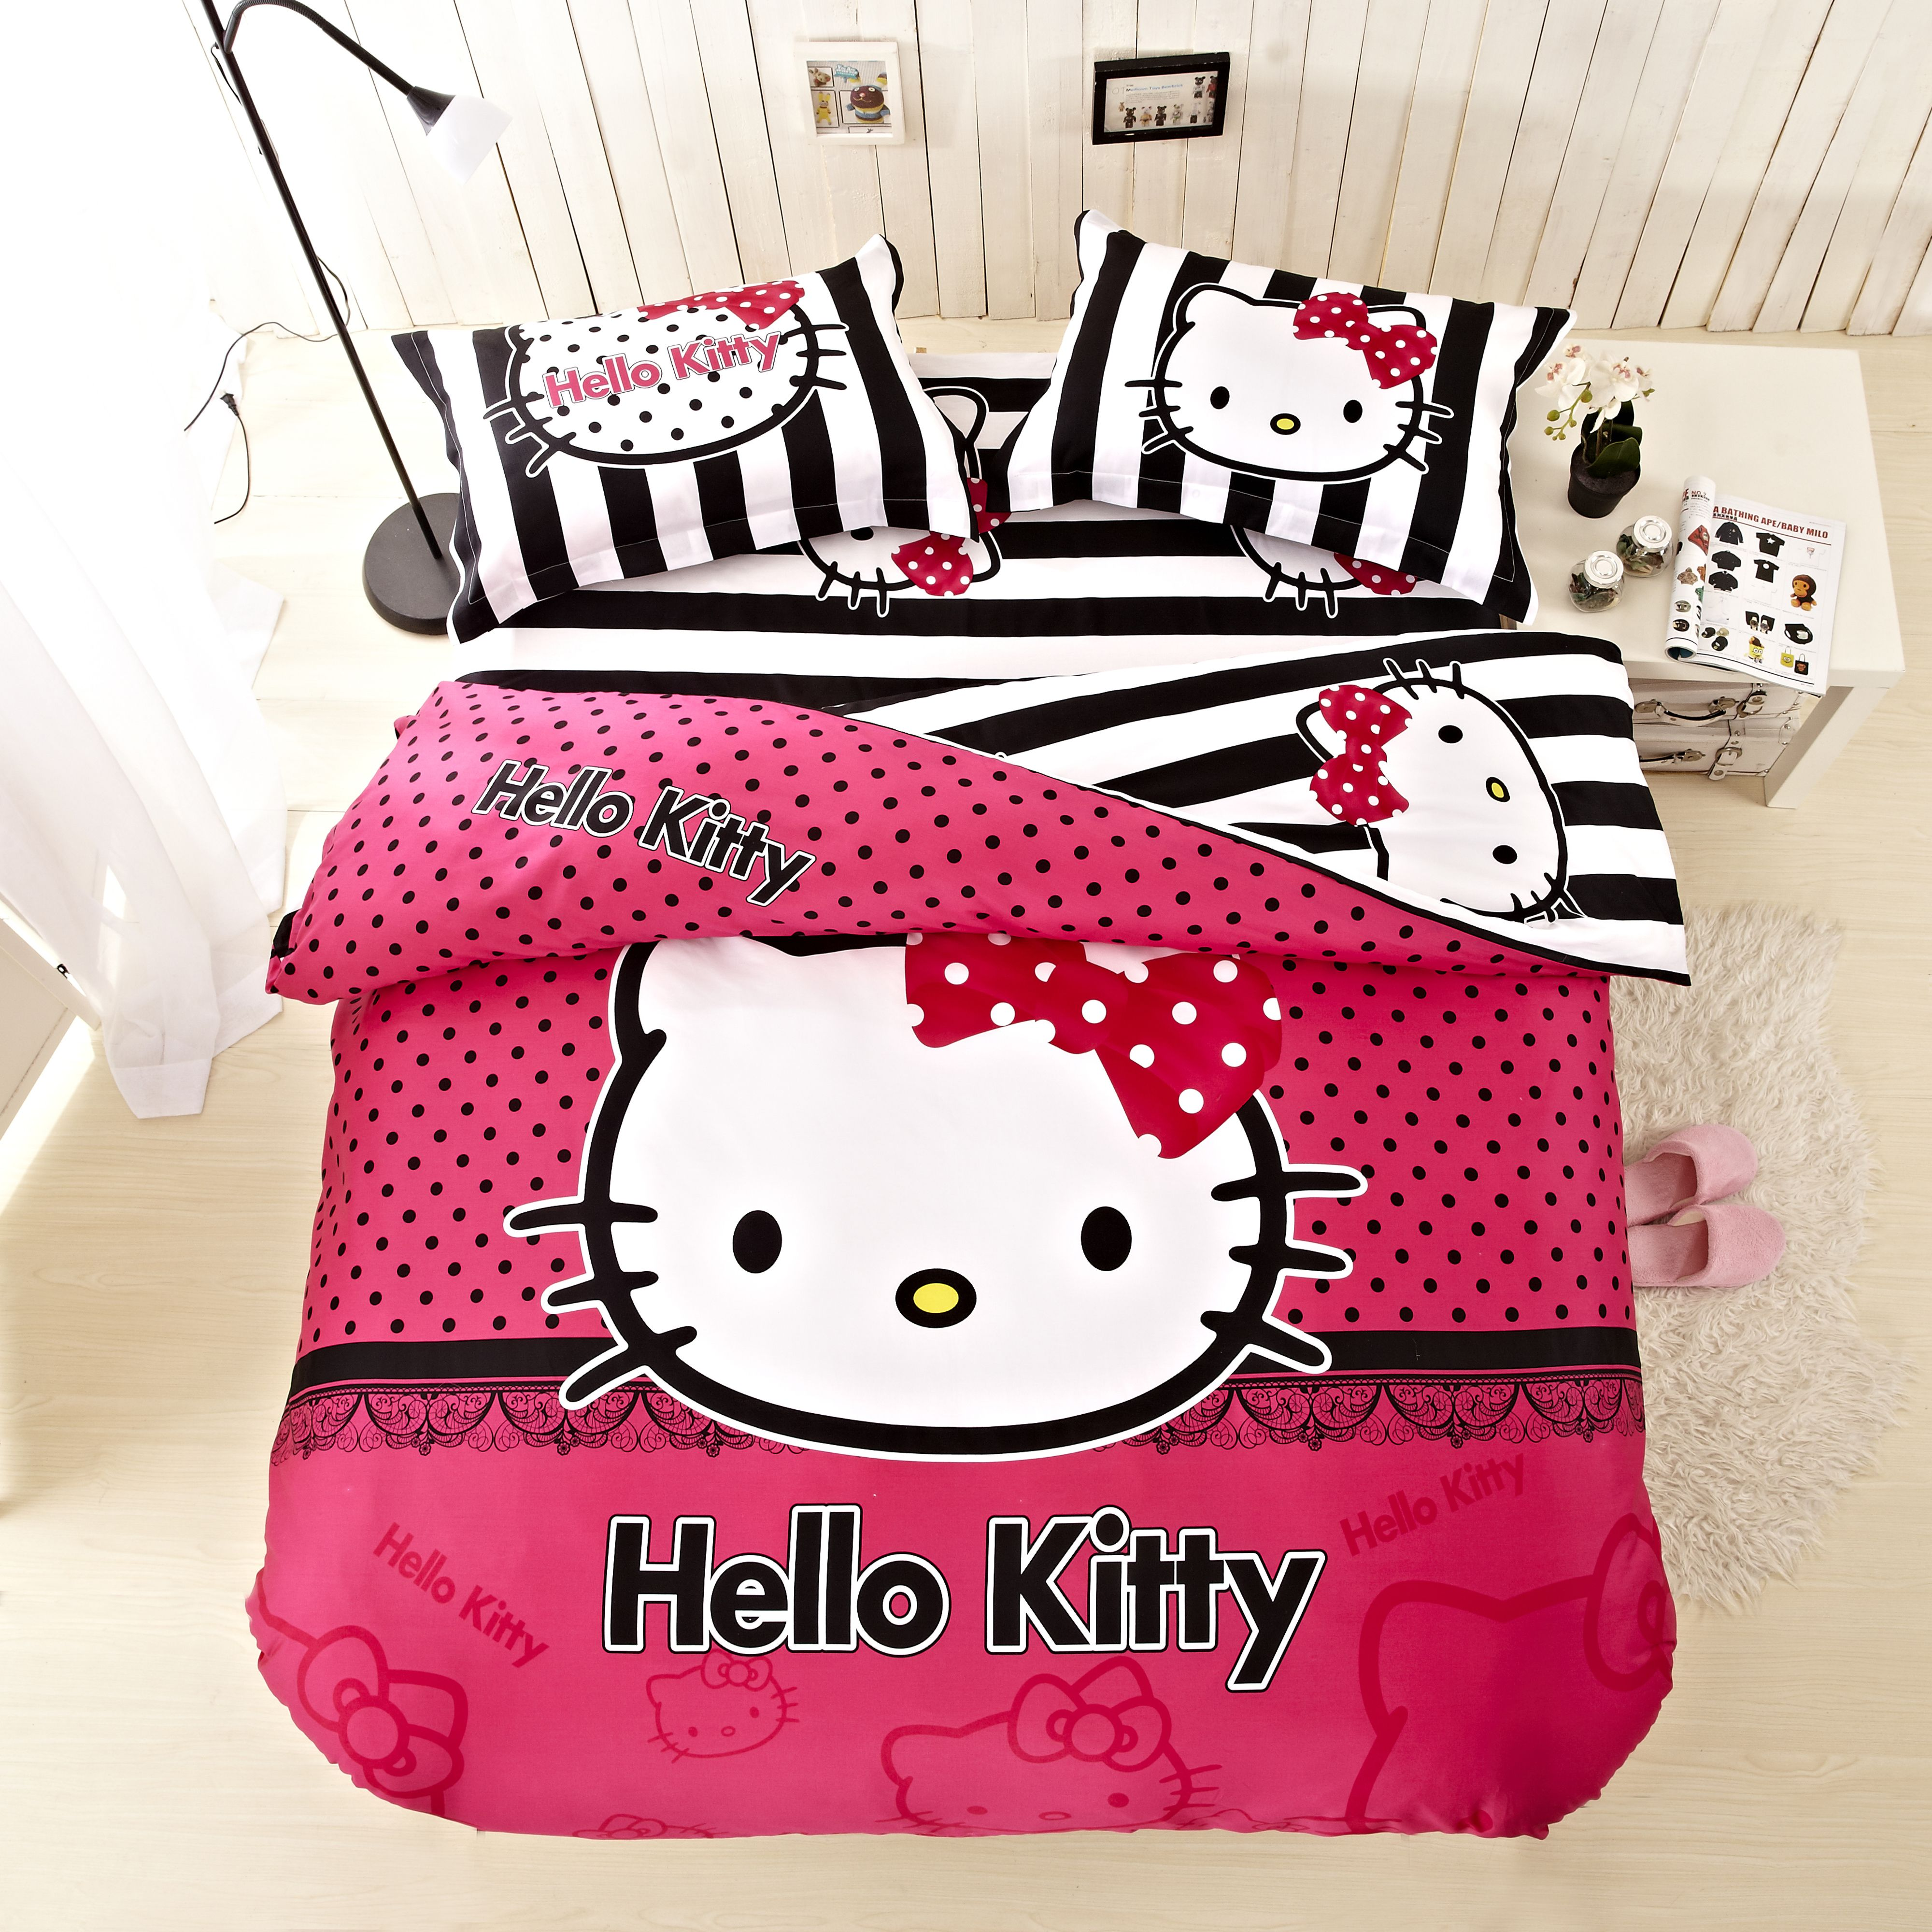 New Arrival Hello Kitty Bed Set Pink And Black Bedding Bed Sets For Girls  Twin Queeen